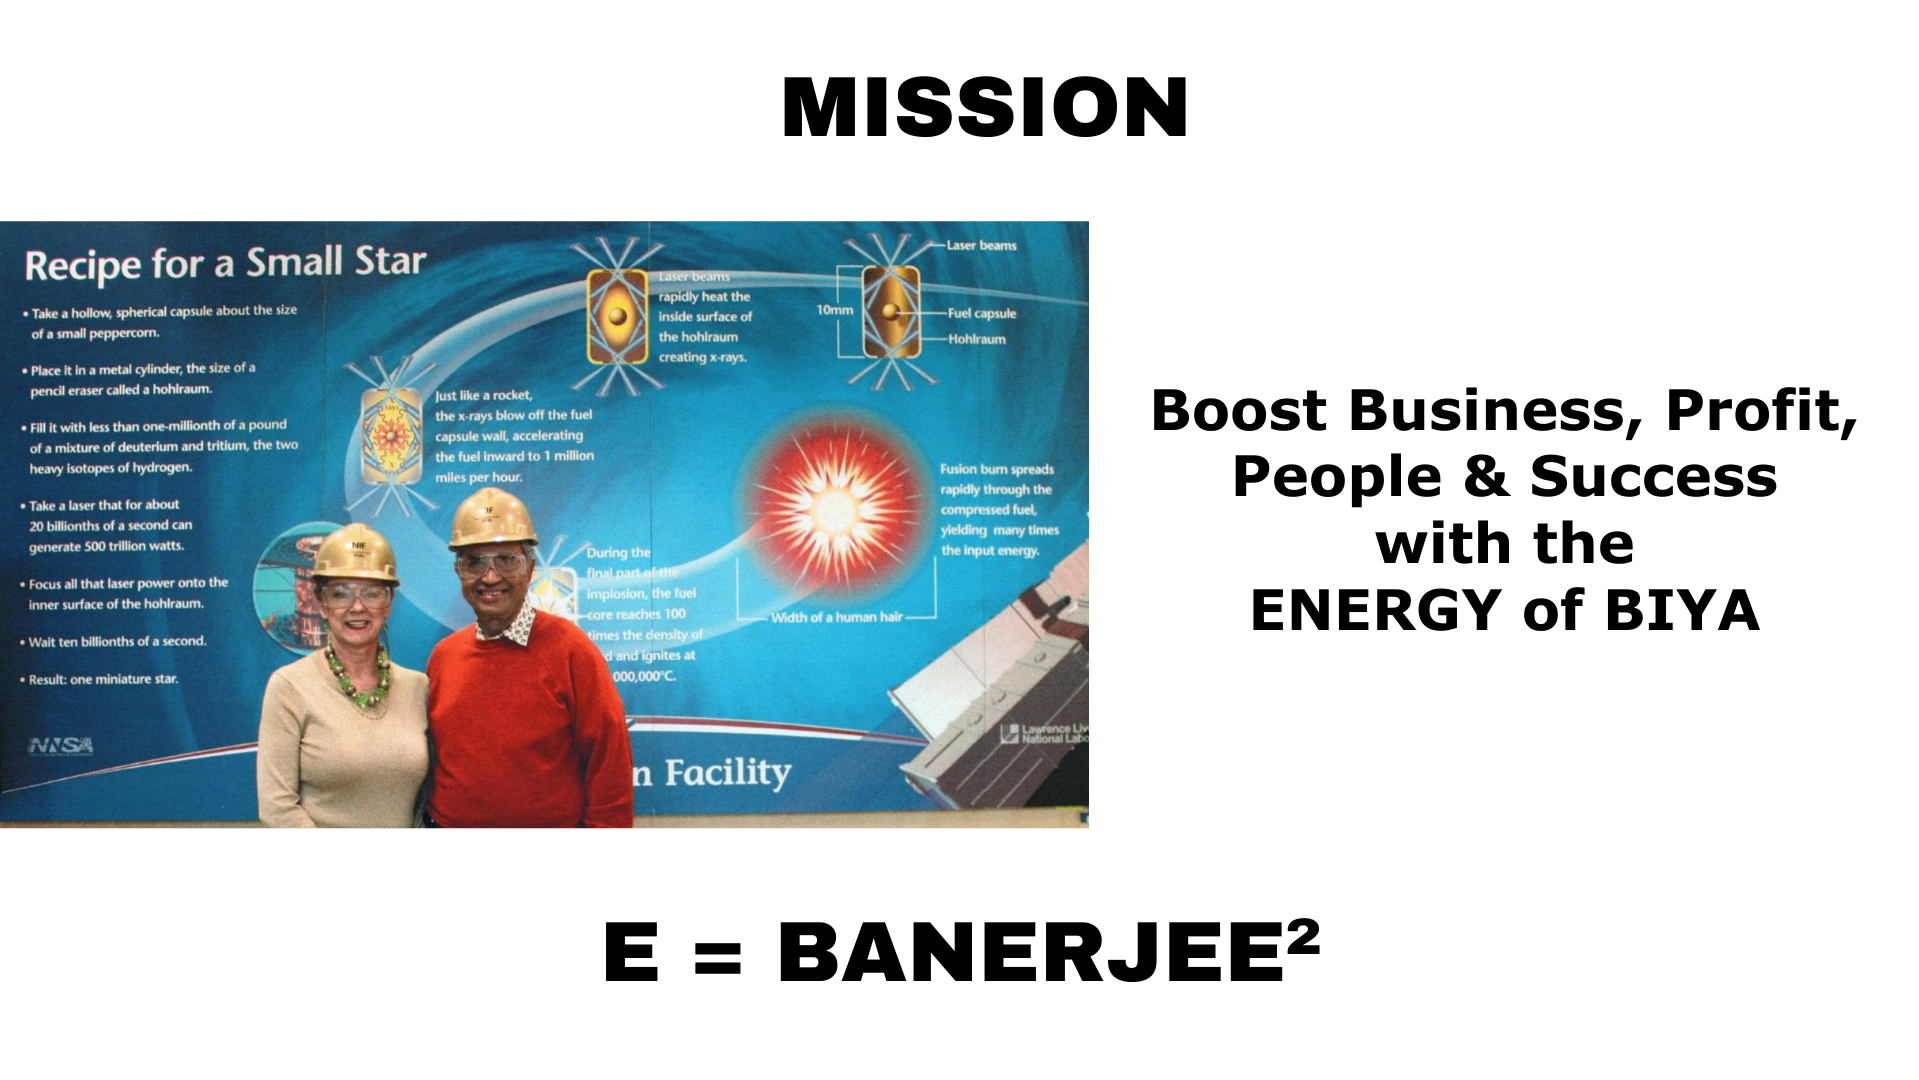 mission statement, team banerjee posing in front of mural depicting laser energy project details